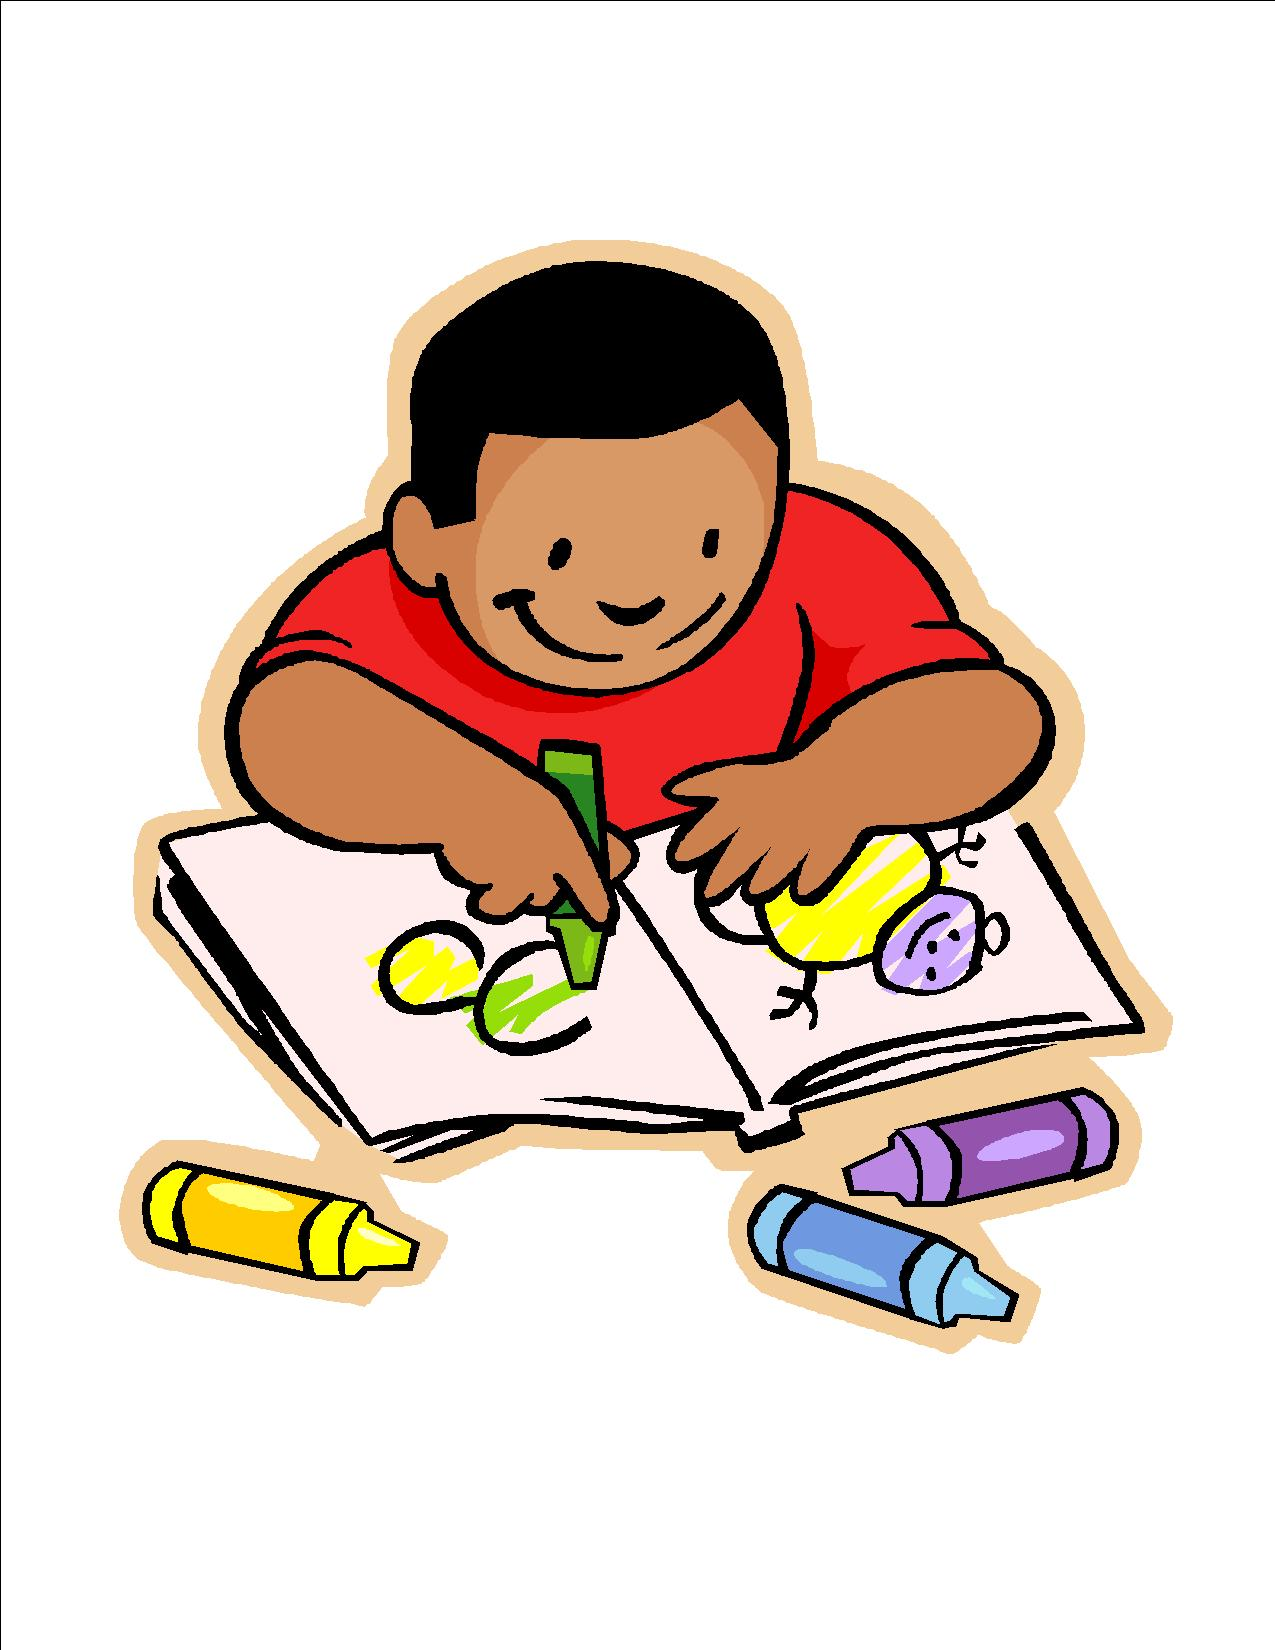 children clip art school - photo #32